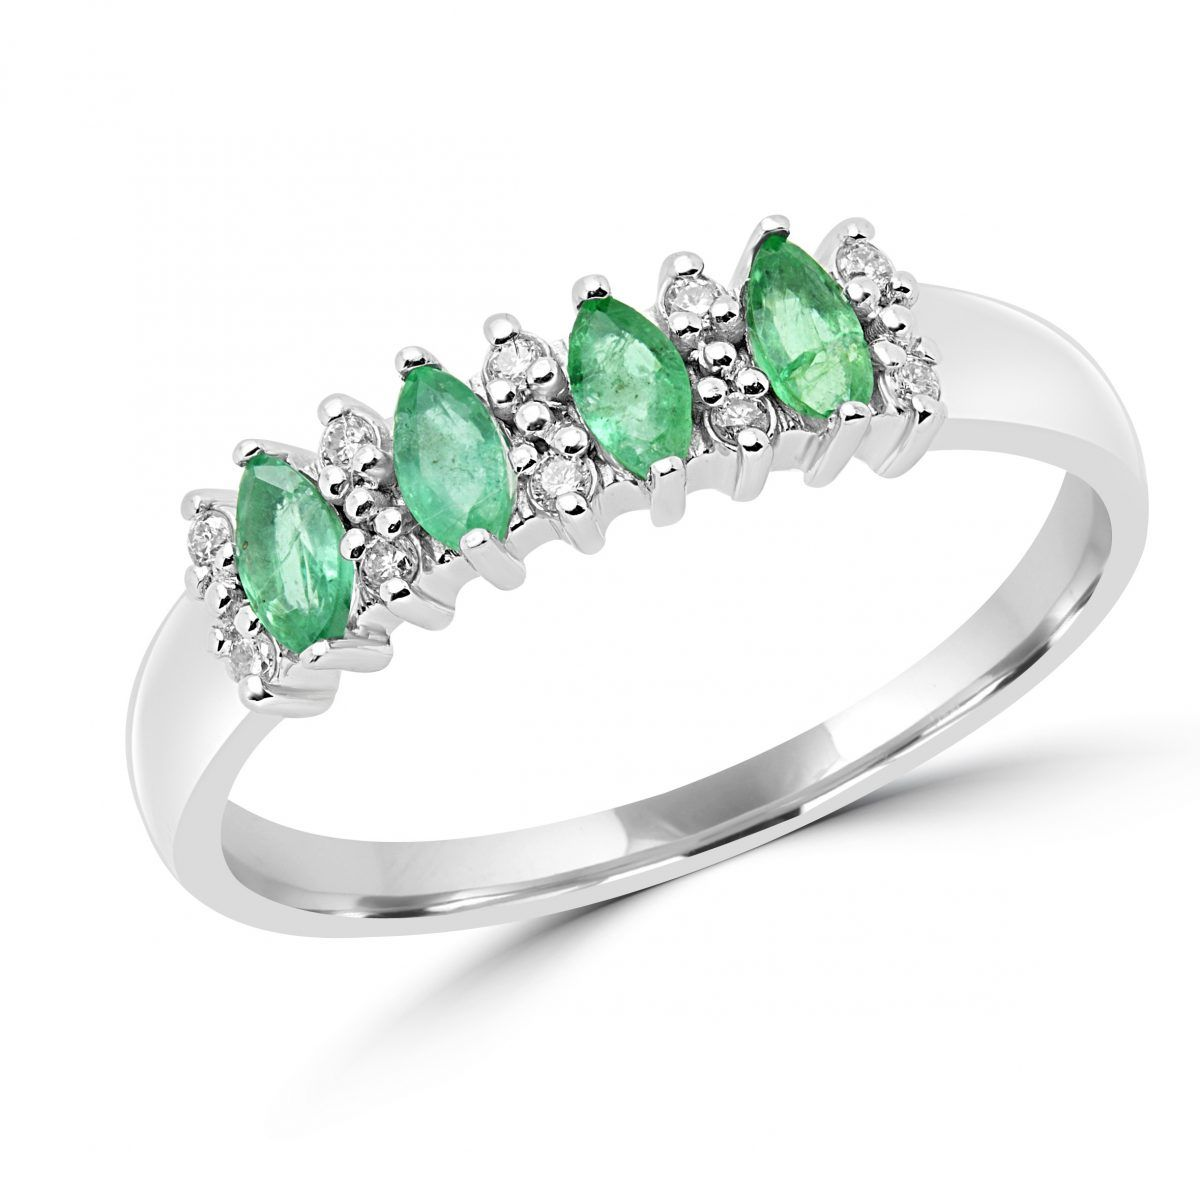 Express your love with this splendid marquise-cut green emerald gemstone and diamond cocktail ring. A truly classic setting style, this anniversary fashion ring features four marquise cut green emeralds, pointing North to South, separated by sparkling diamond accents. A beautiful way to commemorate your 20th or 55th anniversary, a birthday in the month of May, or simply as a gift for the emerald gemstone lover in your life.